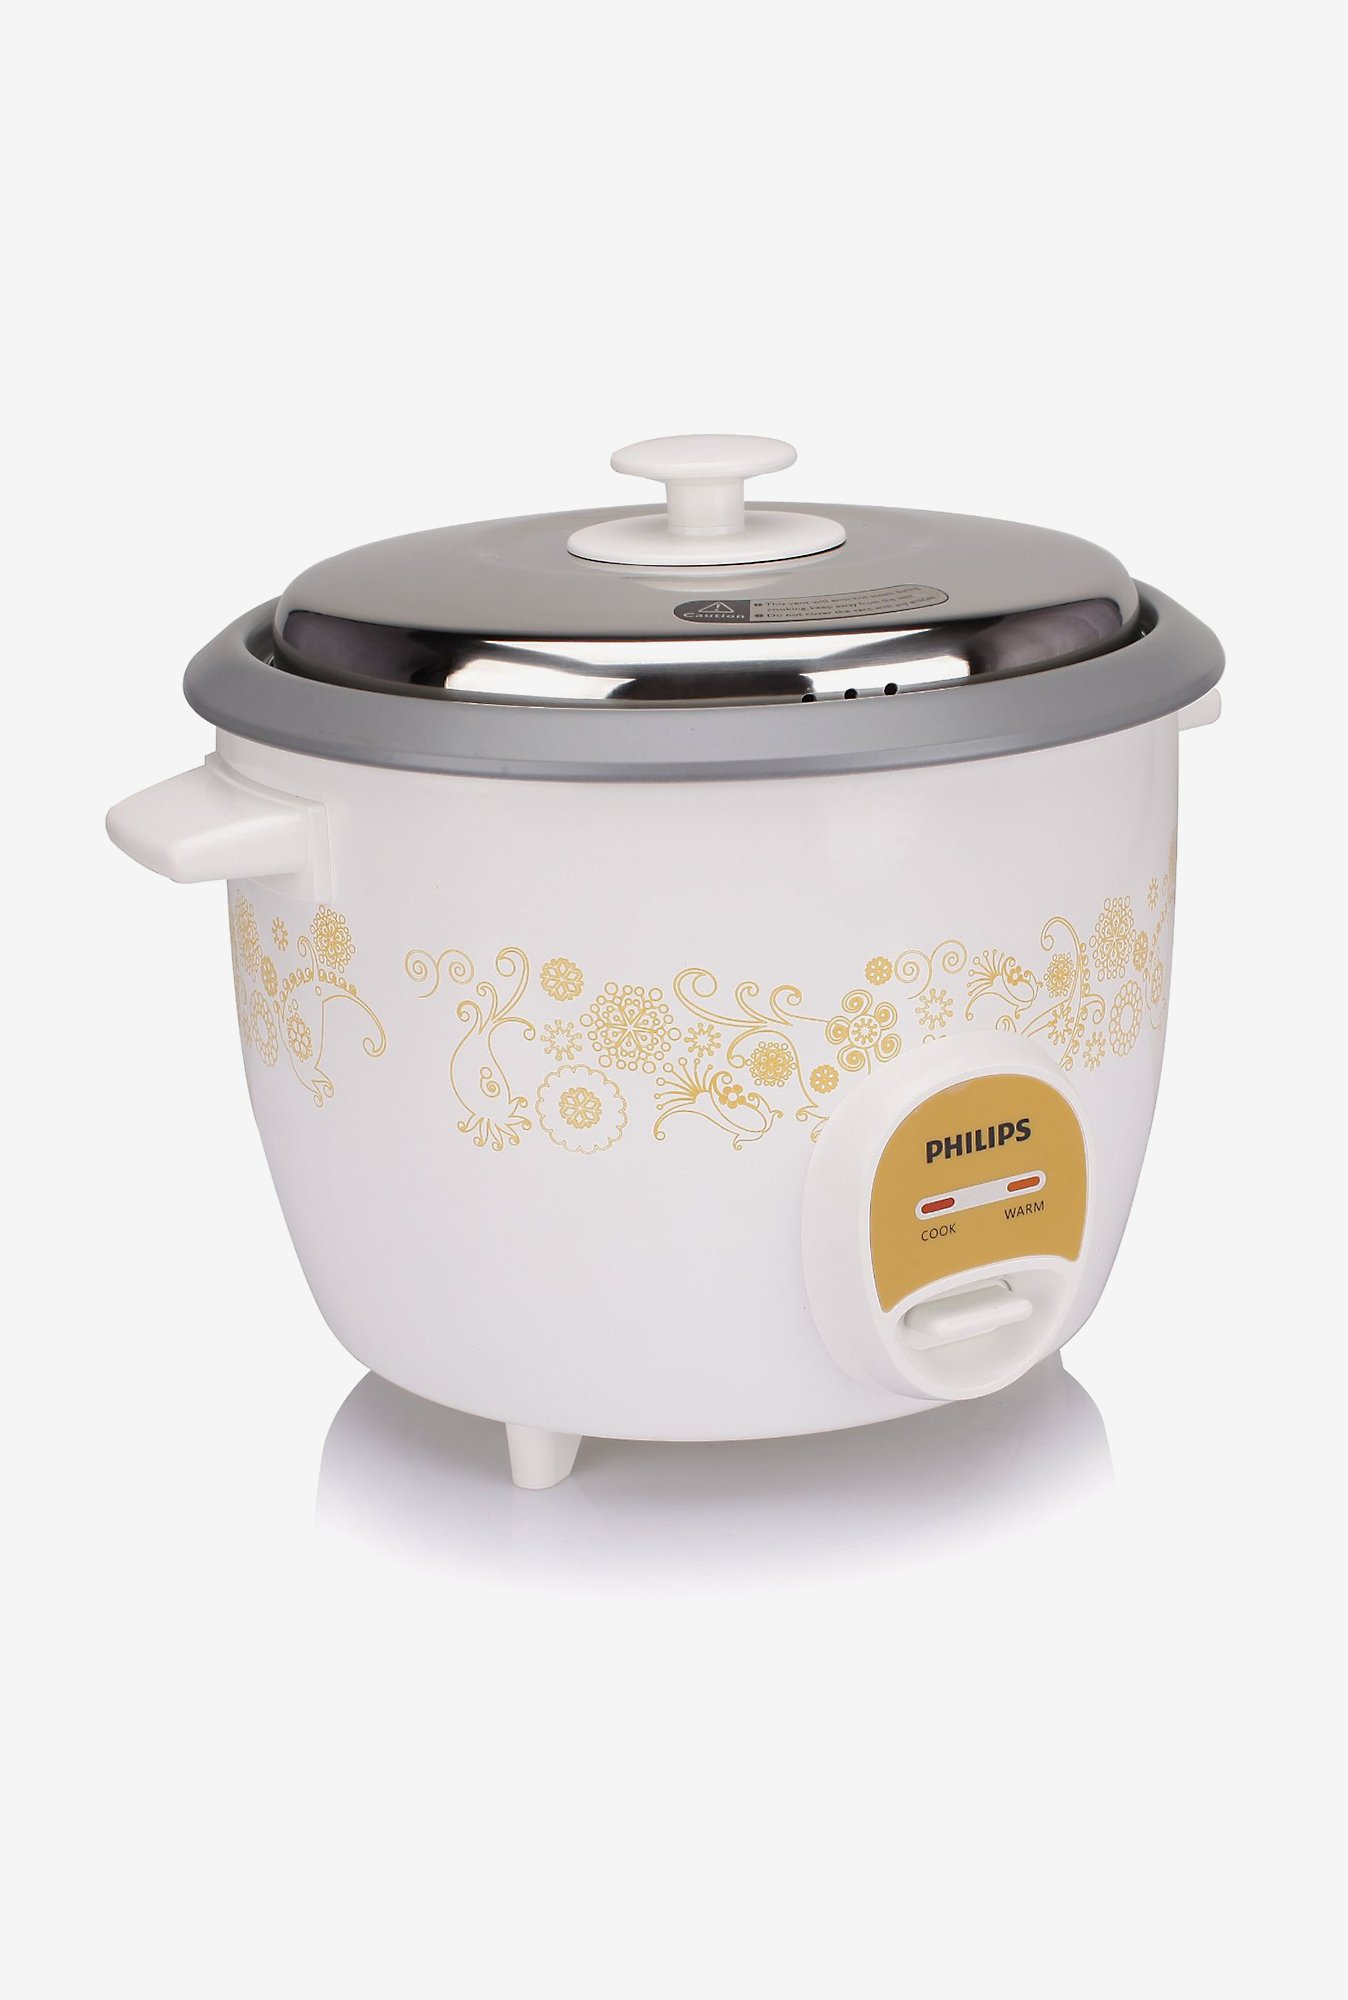 Philips Daily Collection HD3044/01 Rice Cooker White